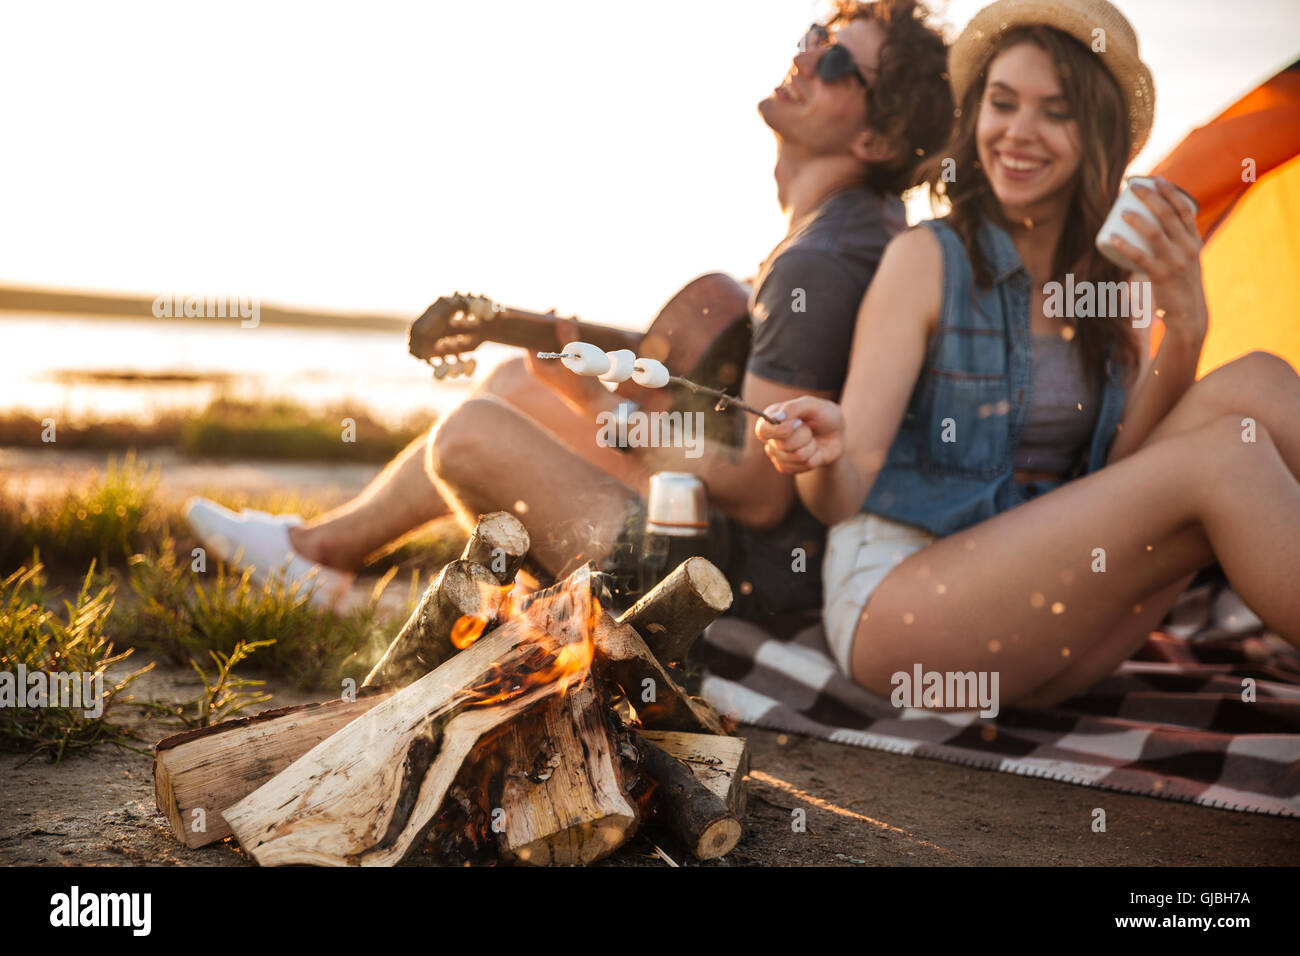 Cheerful beautiful young couple playing guitar and frying marshmallows on bonfire - Stock Image